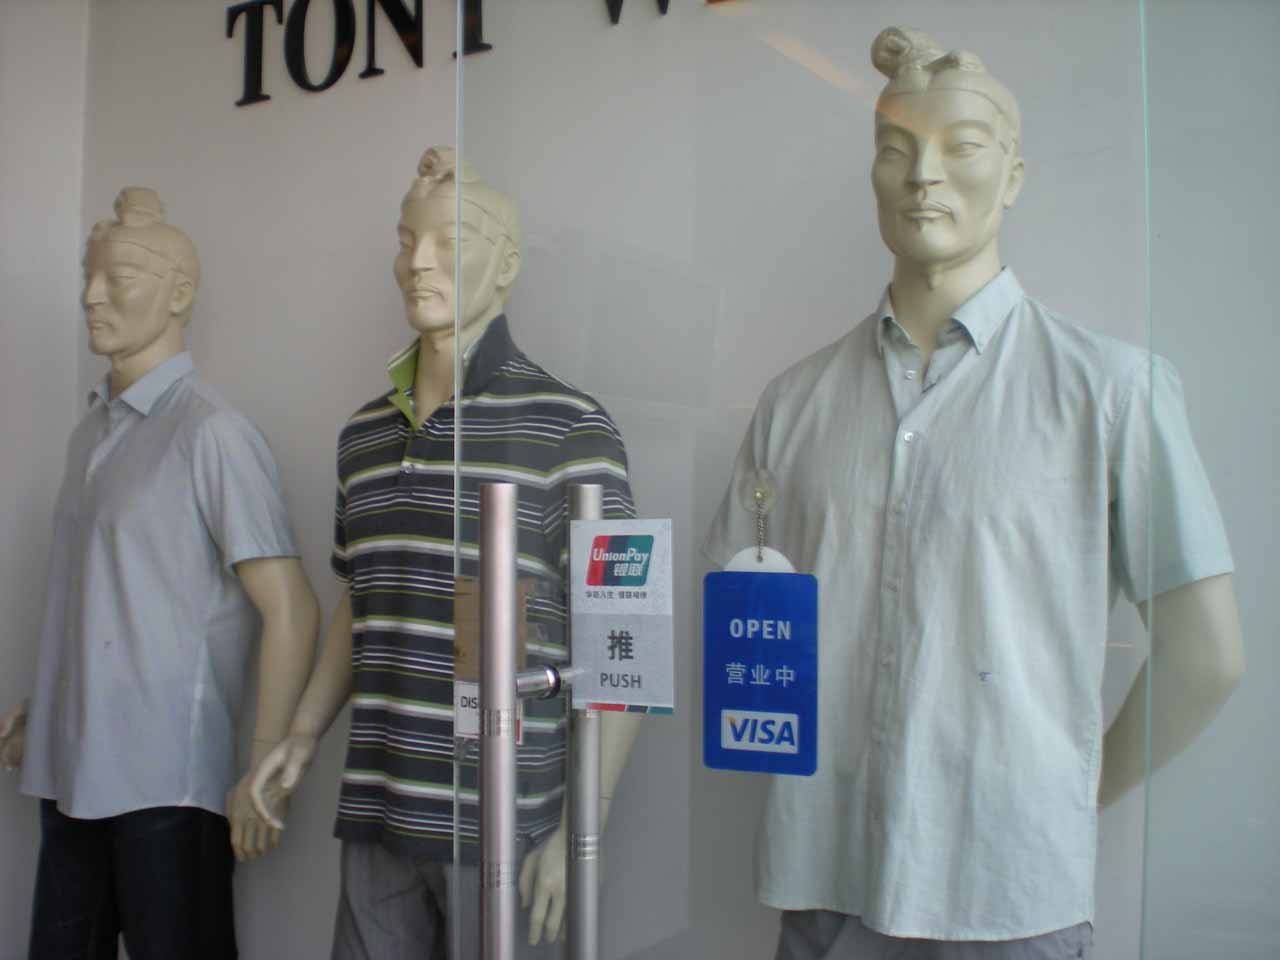 Terracota Mannequins in the city center